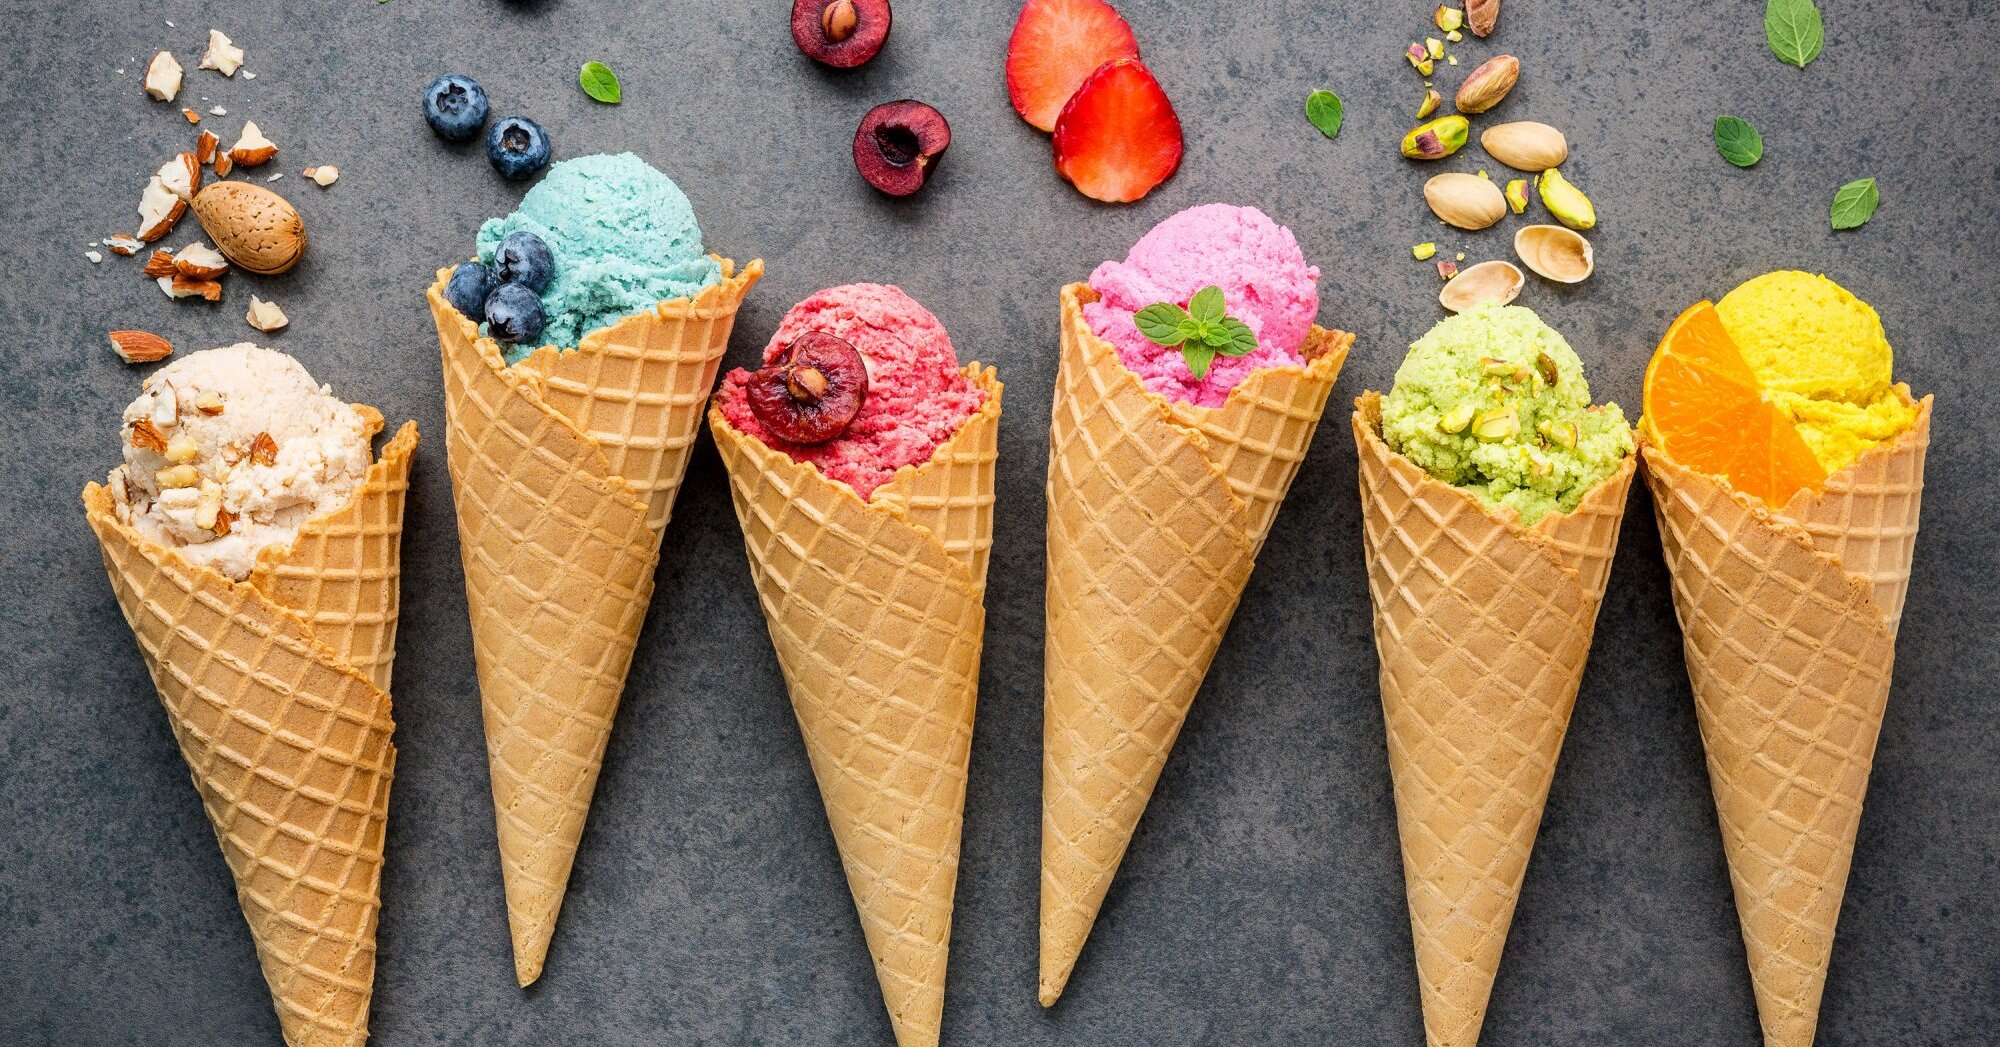 Learn What Makes Gelato Different From Ice Cream